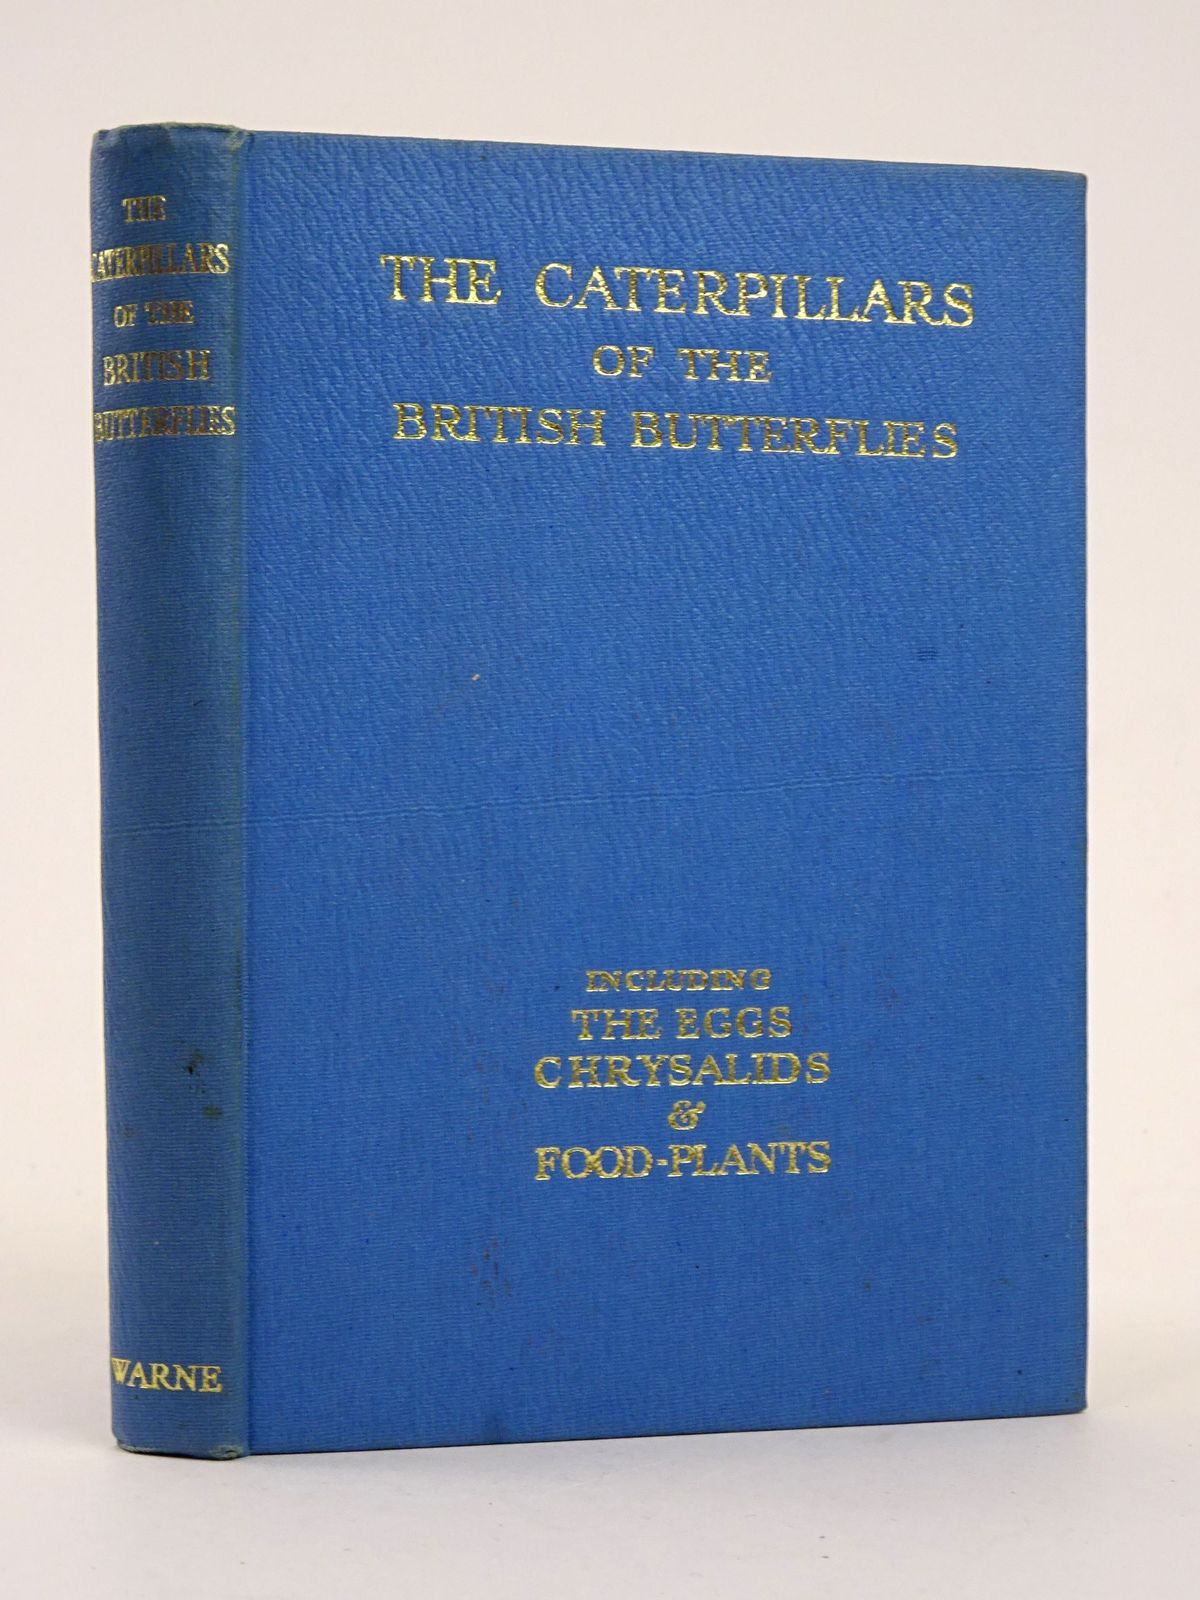 Photo of THE CATERPILLARS OF THE BRITISH BUTTERFLIES INCLUDING THE EGGS, CHRYSALIDS AND FOOD-PLANTS written by Stokoe, W.J. published by Frederick Warne & Co Ltd. (STOCK CODE: 1818329)  for sale by Stella & Rose's Books